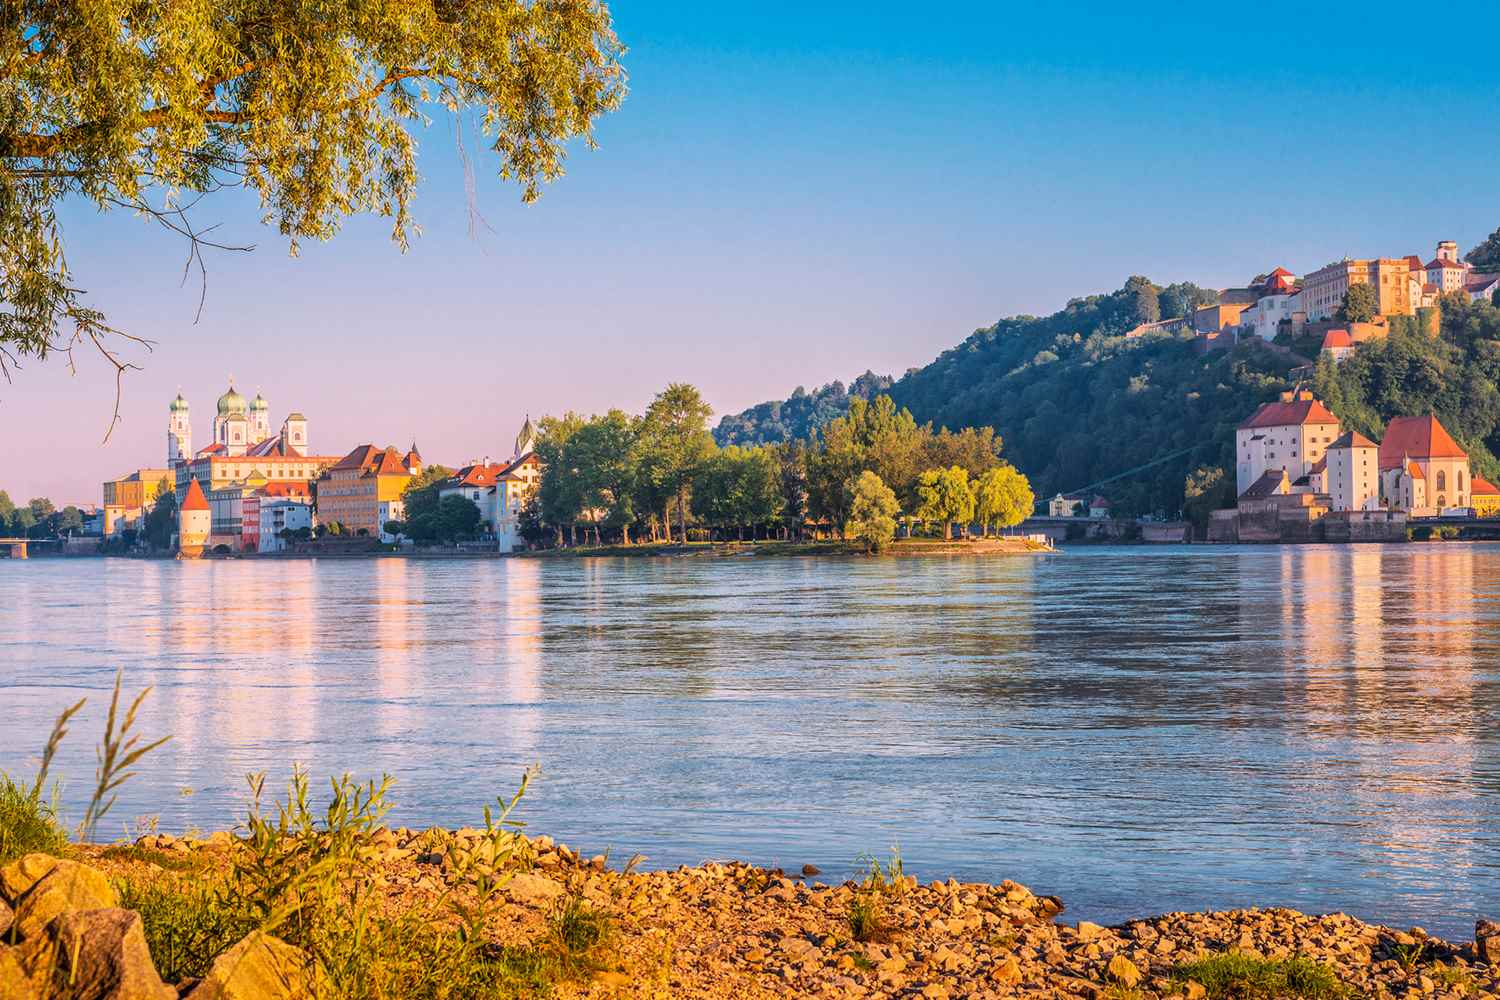 /Assets/CruiseGallery/Thumb/theromanticdanube_GERMANY_Passau_iStock_87609191_gallery.jpg